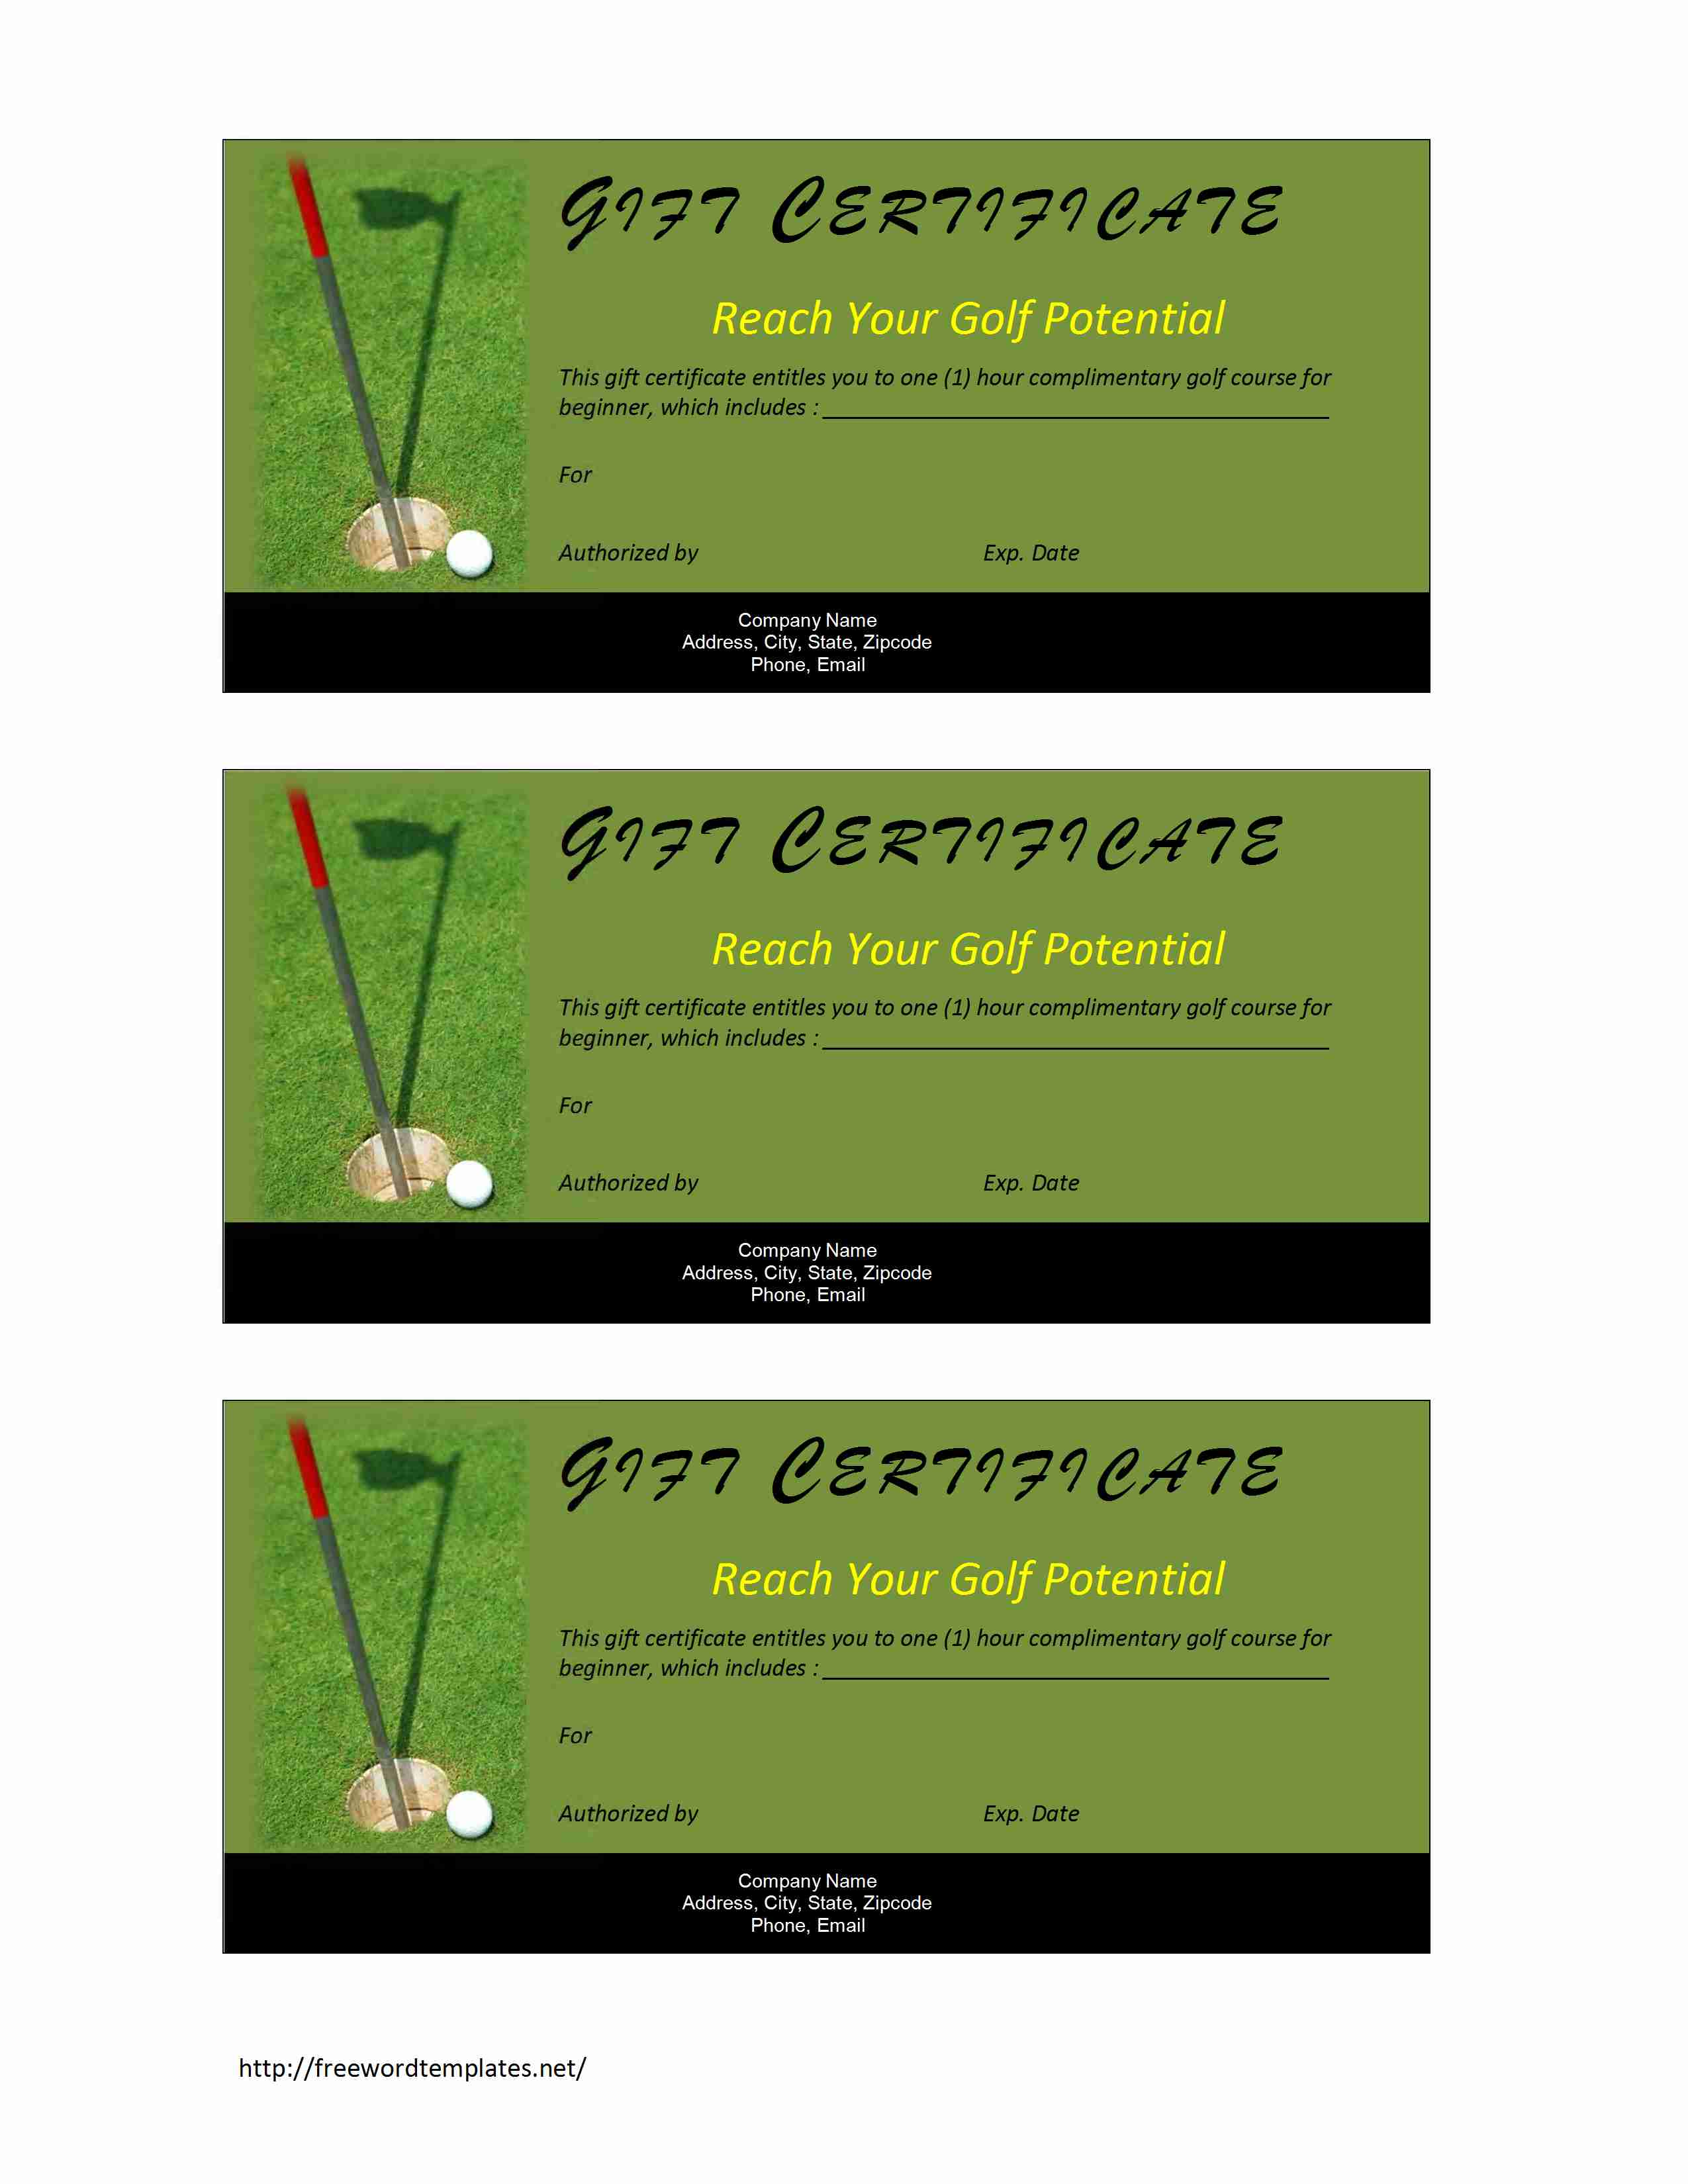 Golf Gift Certificate – Gift Voucher Templates for Word